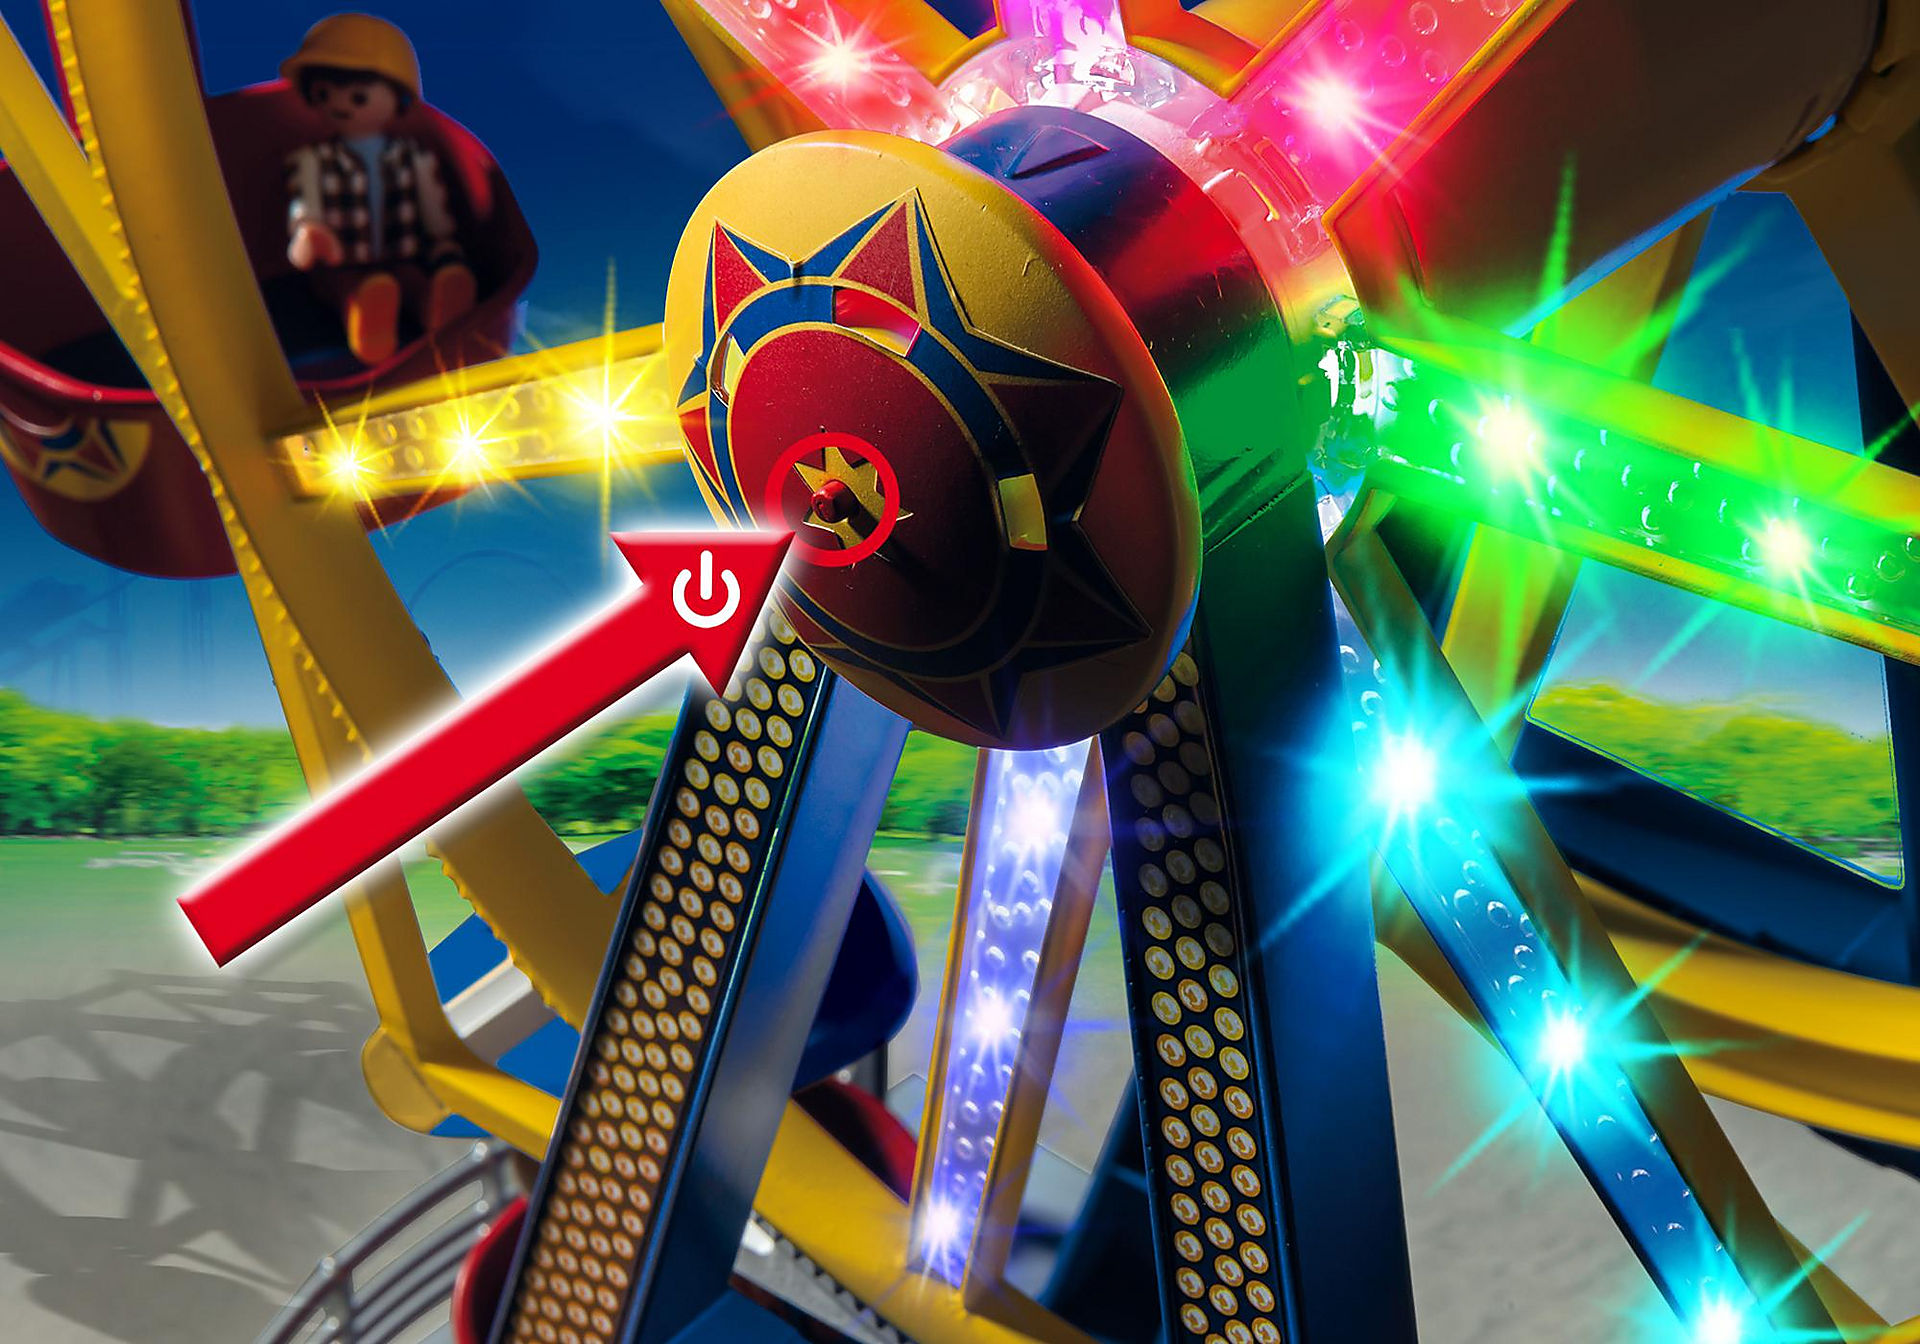 5552 Ferris Wheel with Lights zoom image5